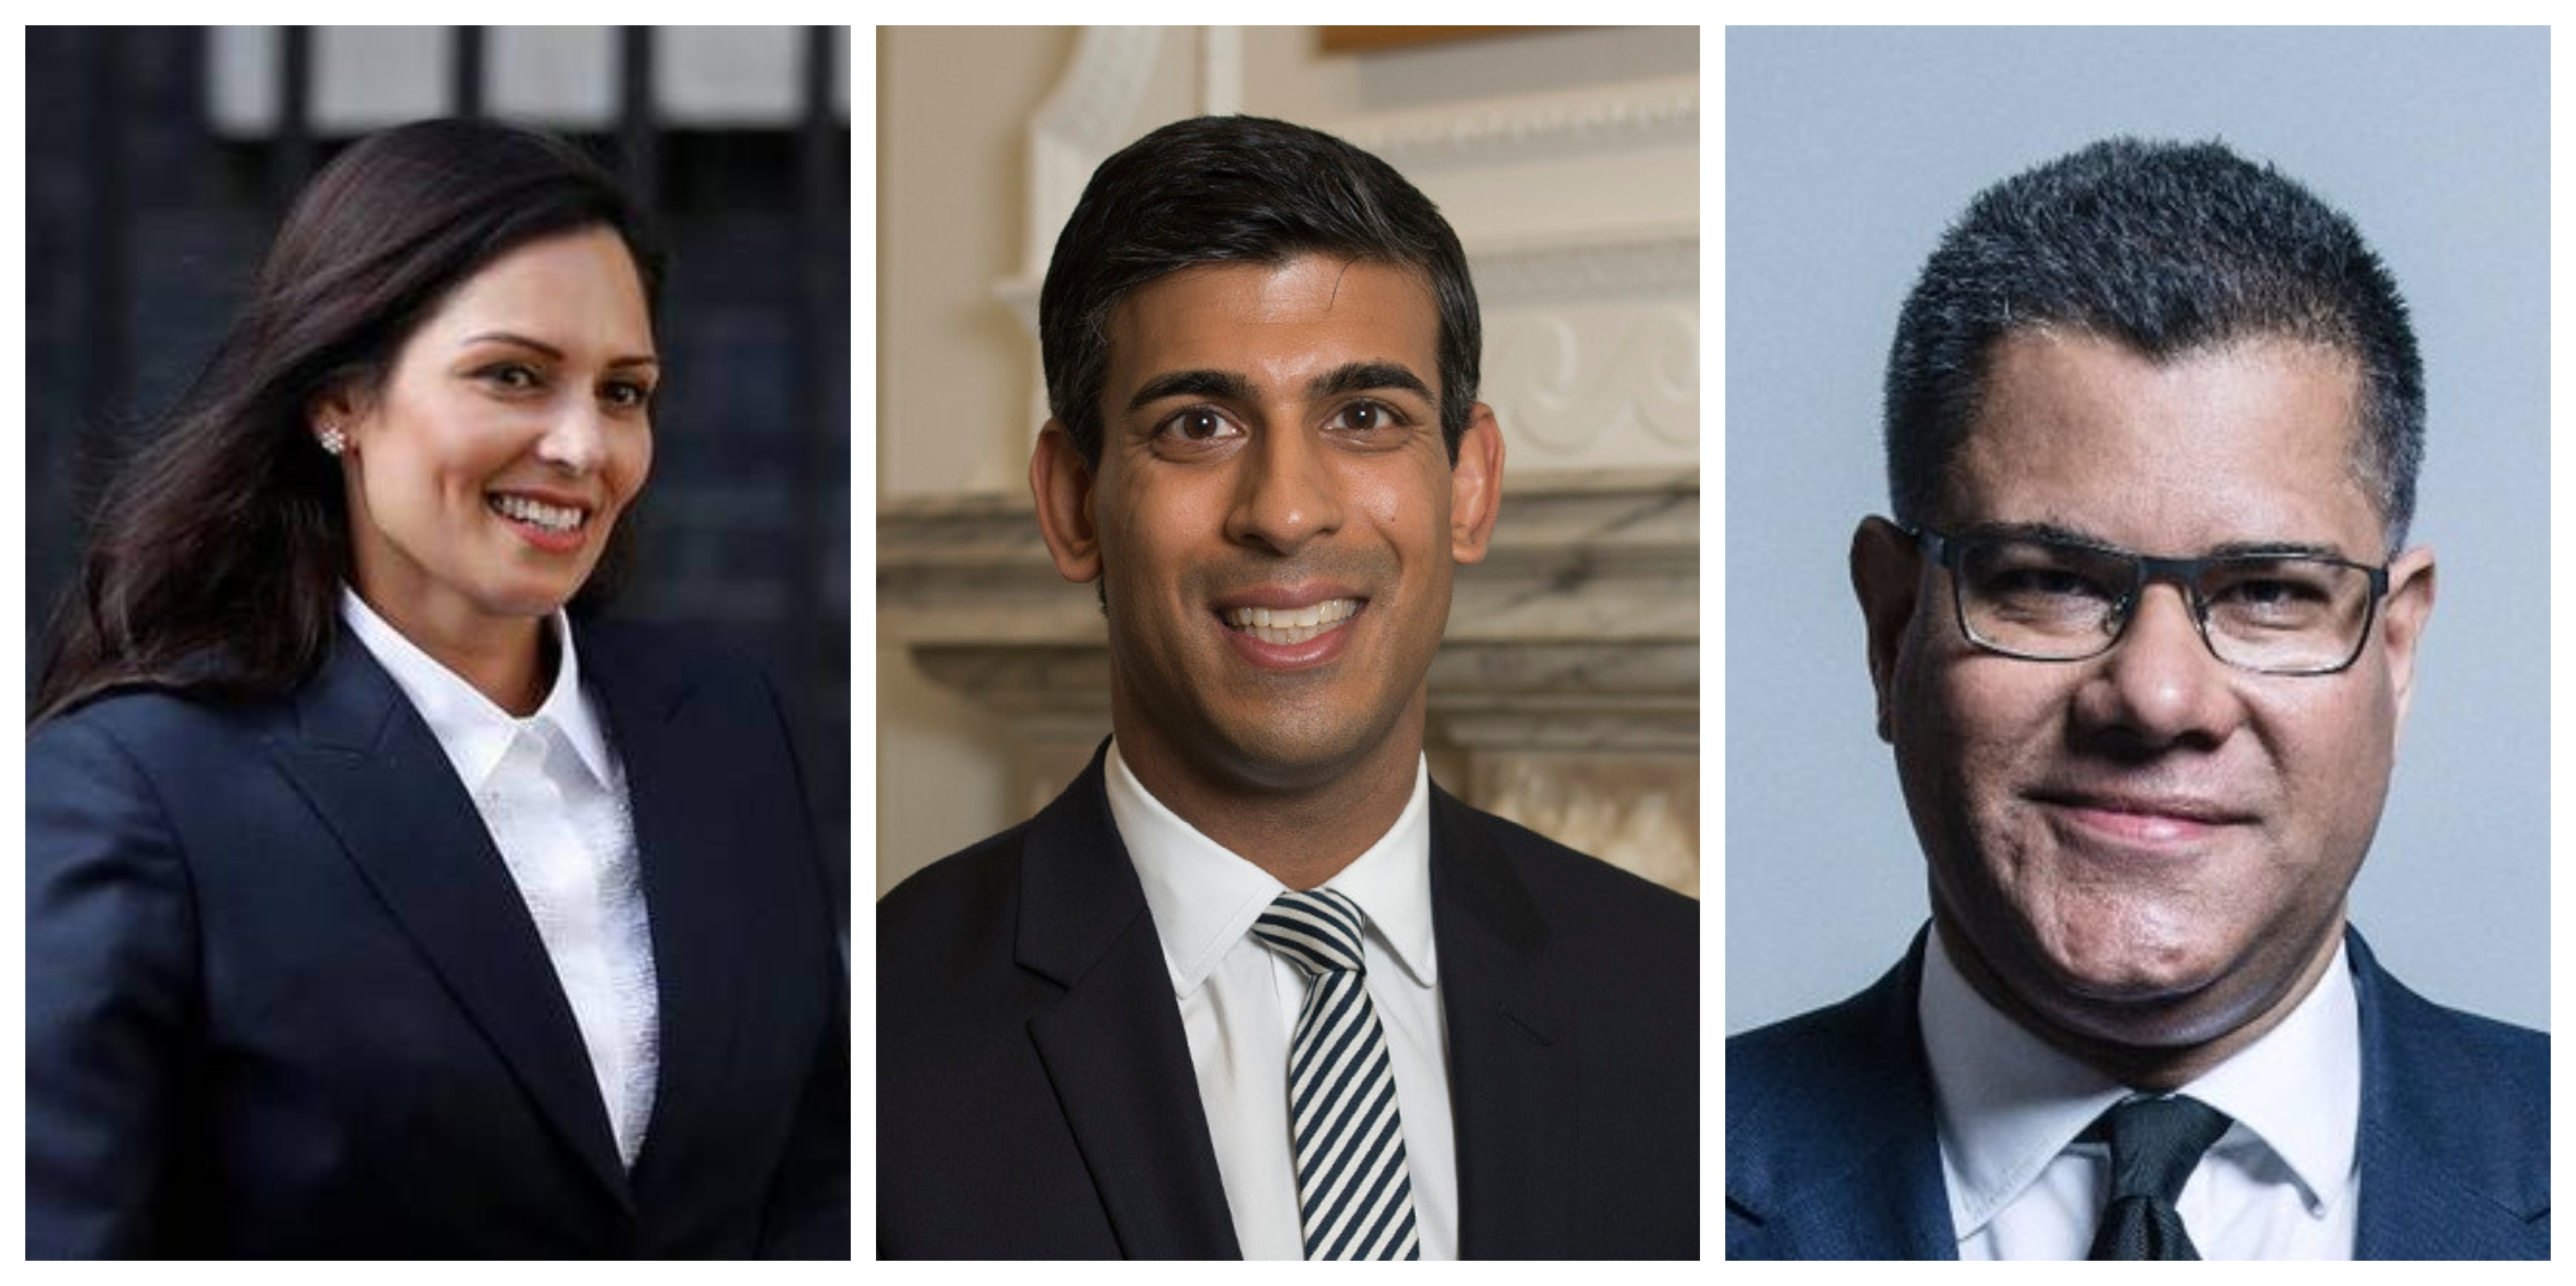 (From left) Priti Patel, Alok Sharma and Rishi Sunak who are members of UK PM Boris Johnson's cabinet. Photo courtesy: Wikimedia